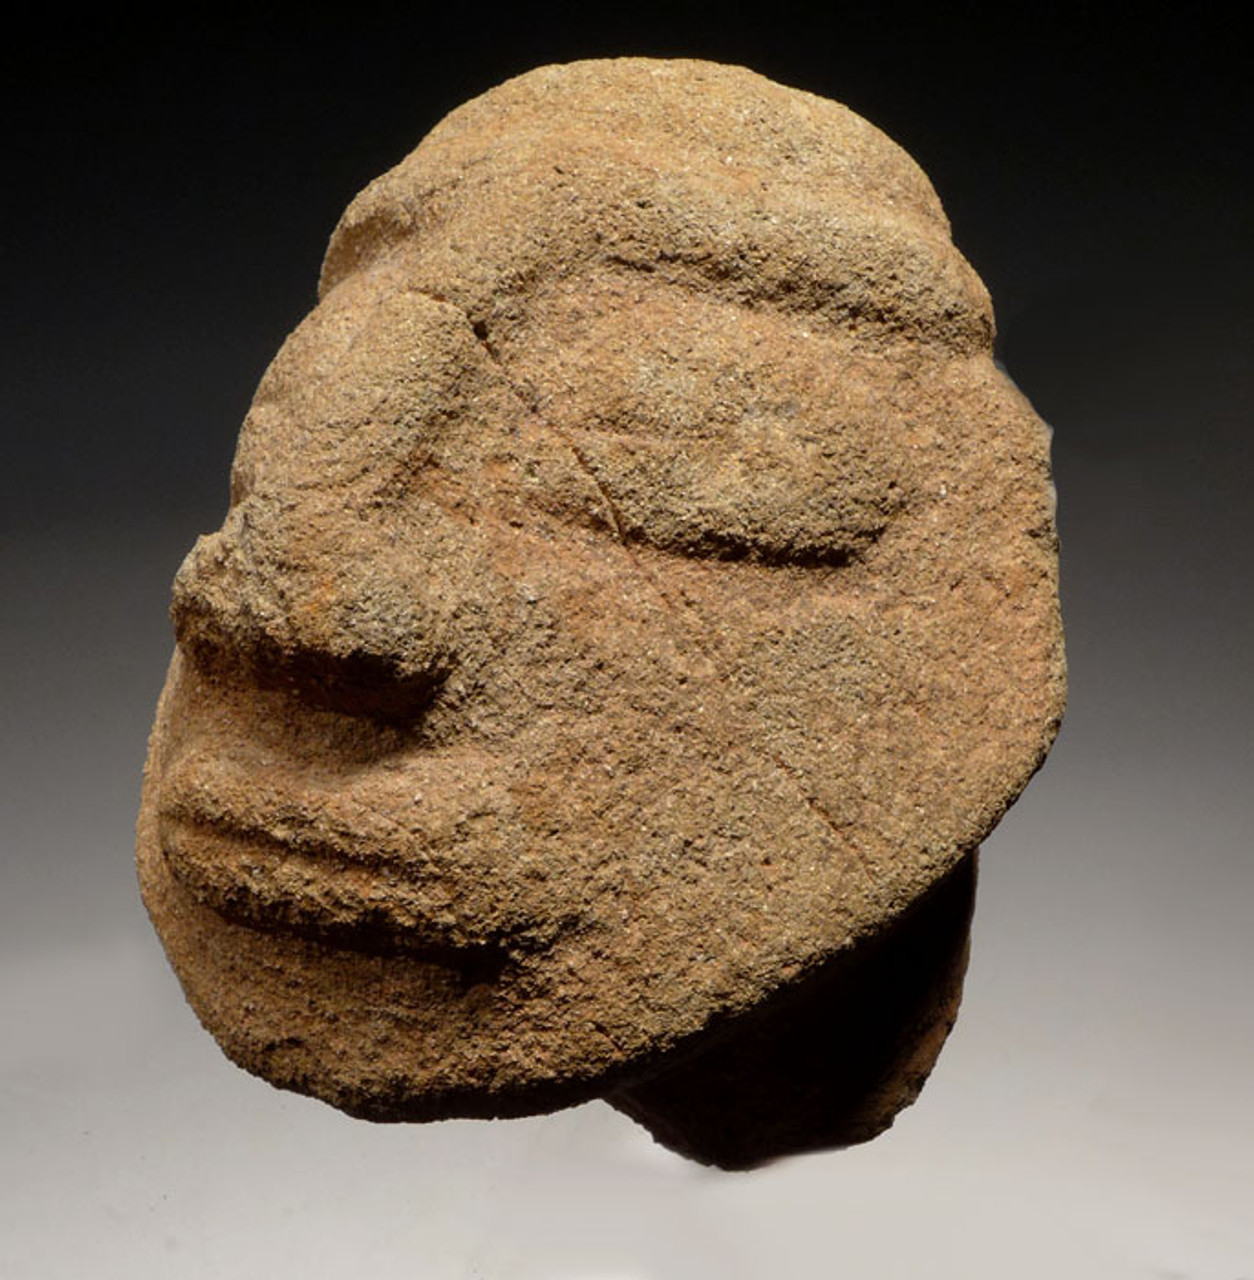 PC202 - PRE-COLUMBIAN STONE CARVED HEAD FROM CENTRAL AMERICA